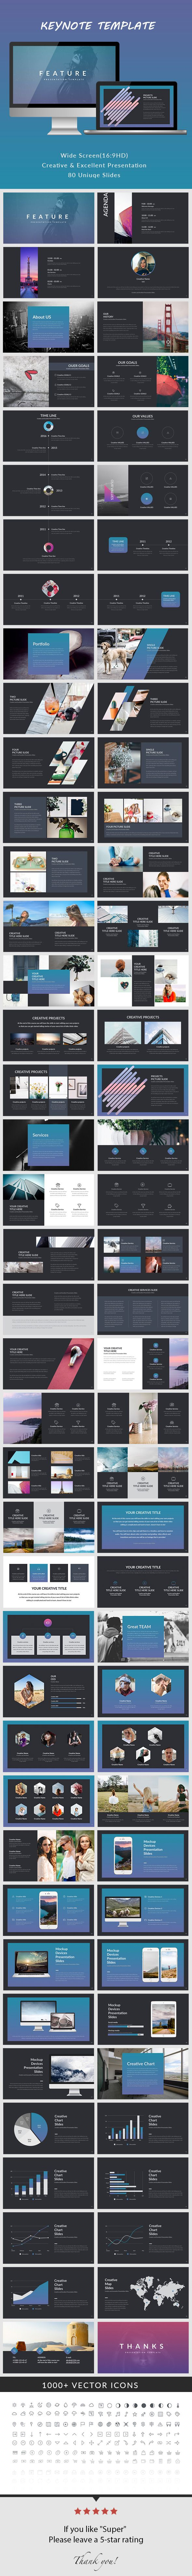 Feature Creative Keynote Presentation #modern #minimal • Download ➝ https://graphicriver.net/item/feature-creative-keynote-presentation/18457614?ref=pxcr